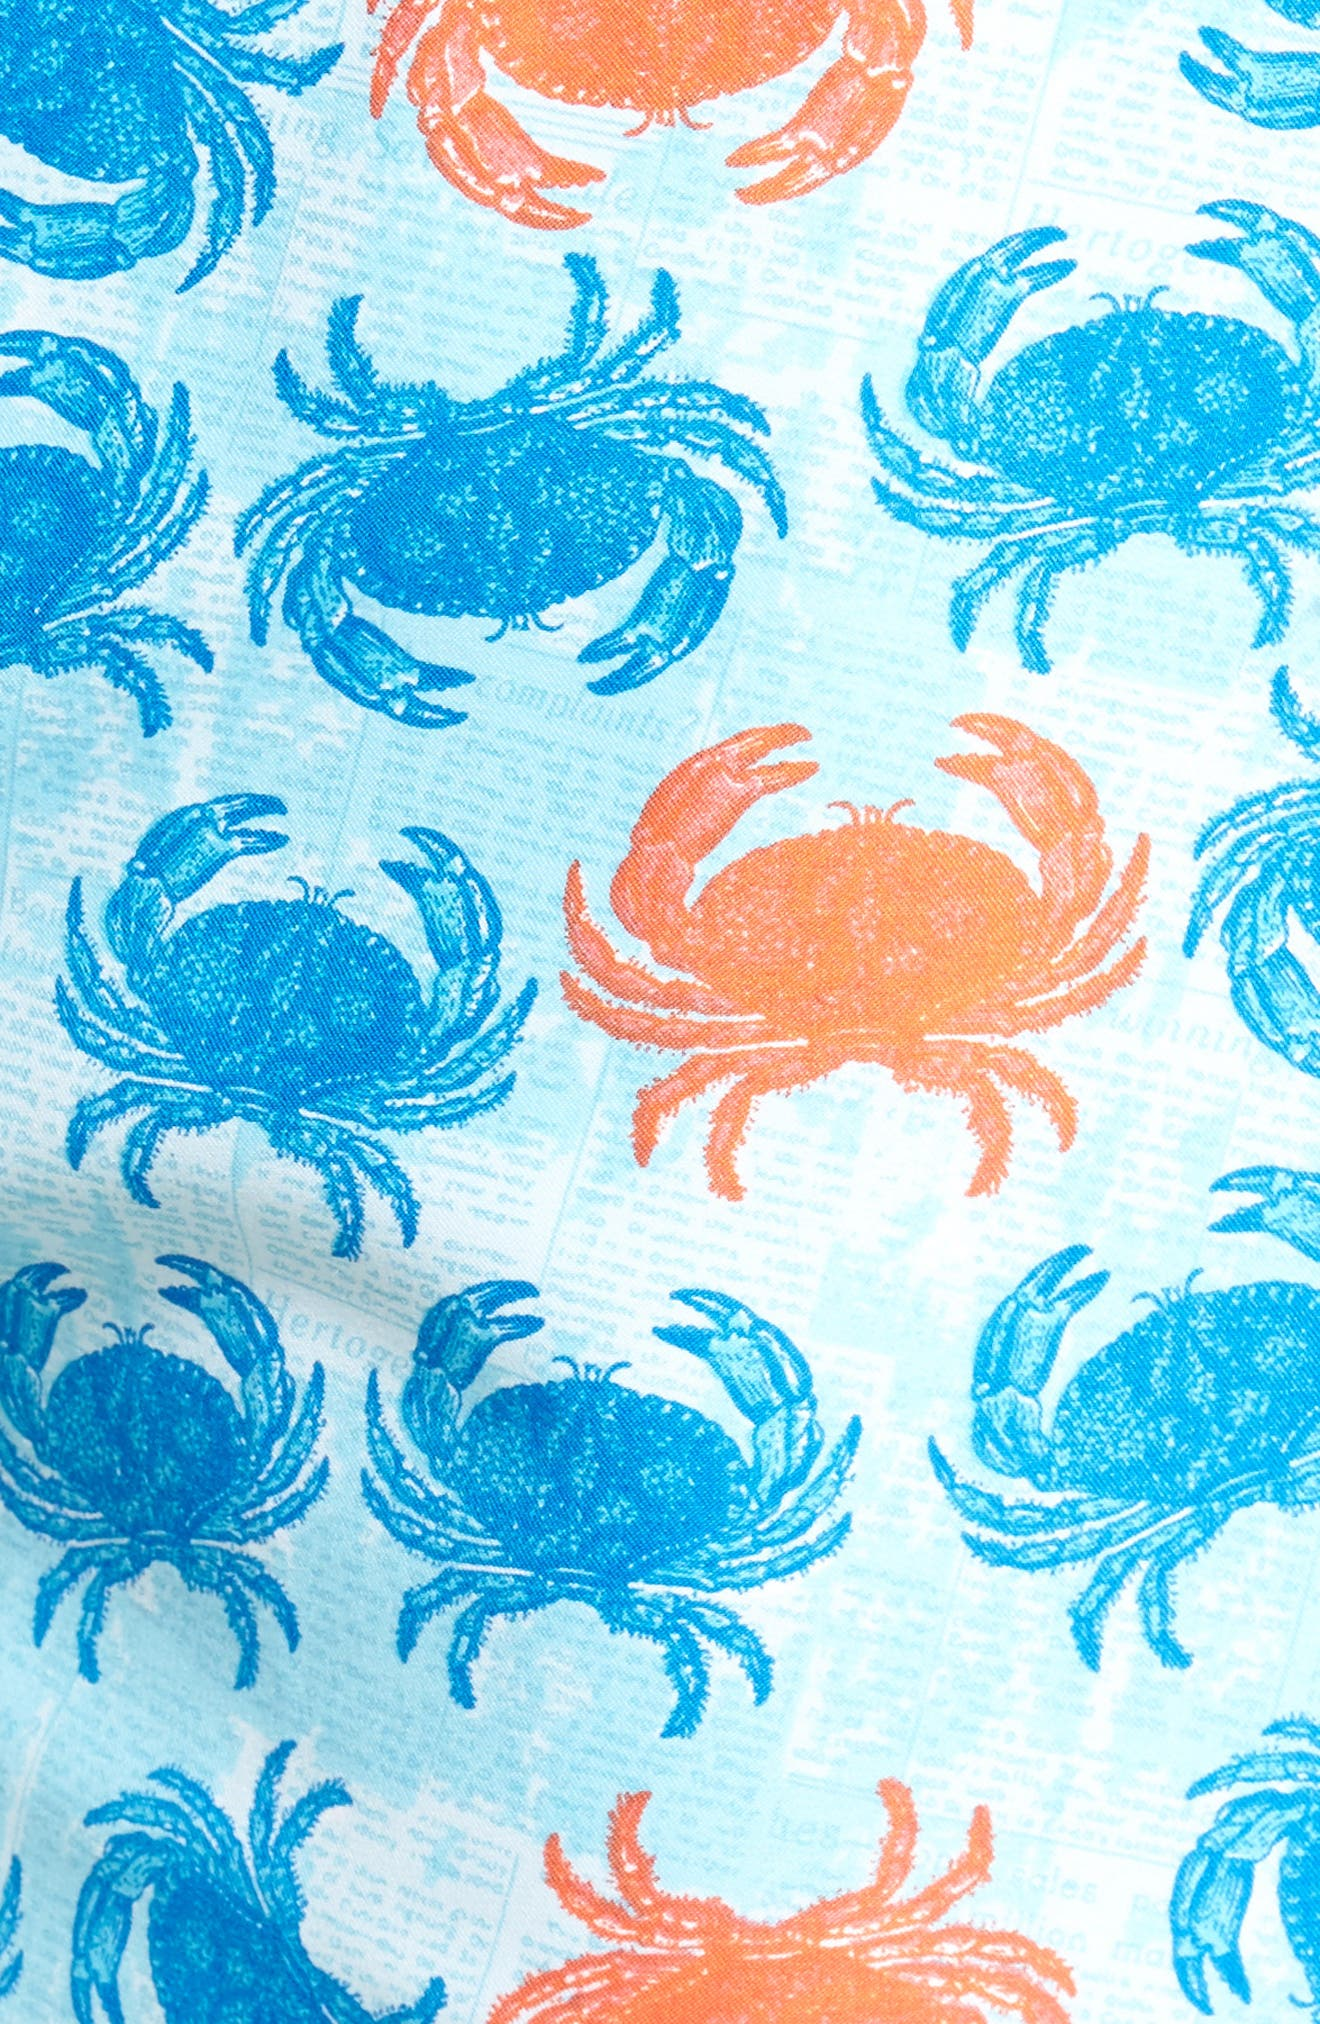 Crab Shack Swim Shorts,                             Alternate thumbnail 5, color,                             Atlantic Blue